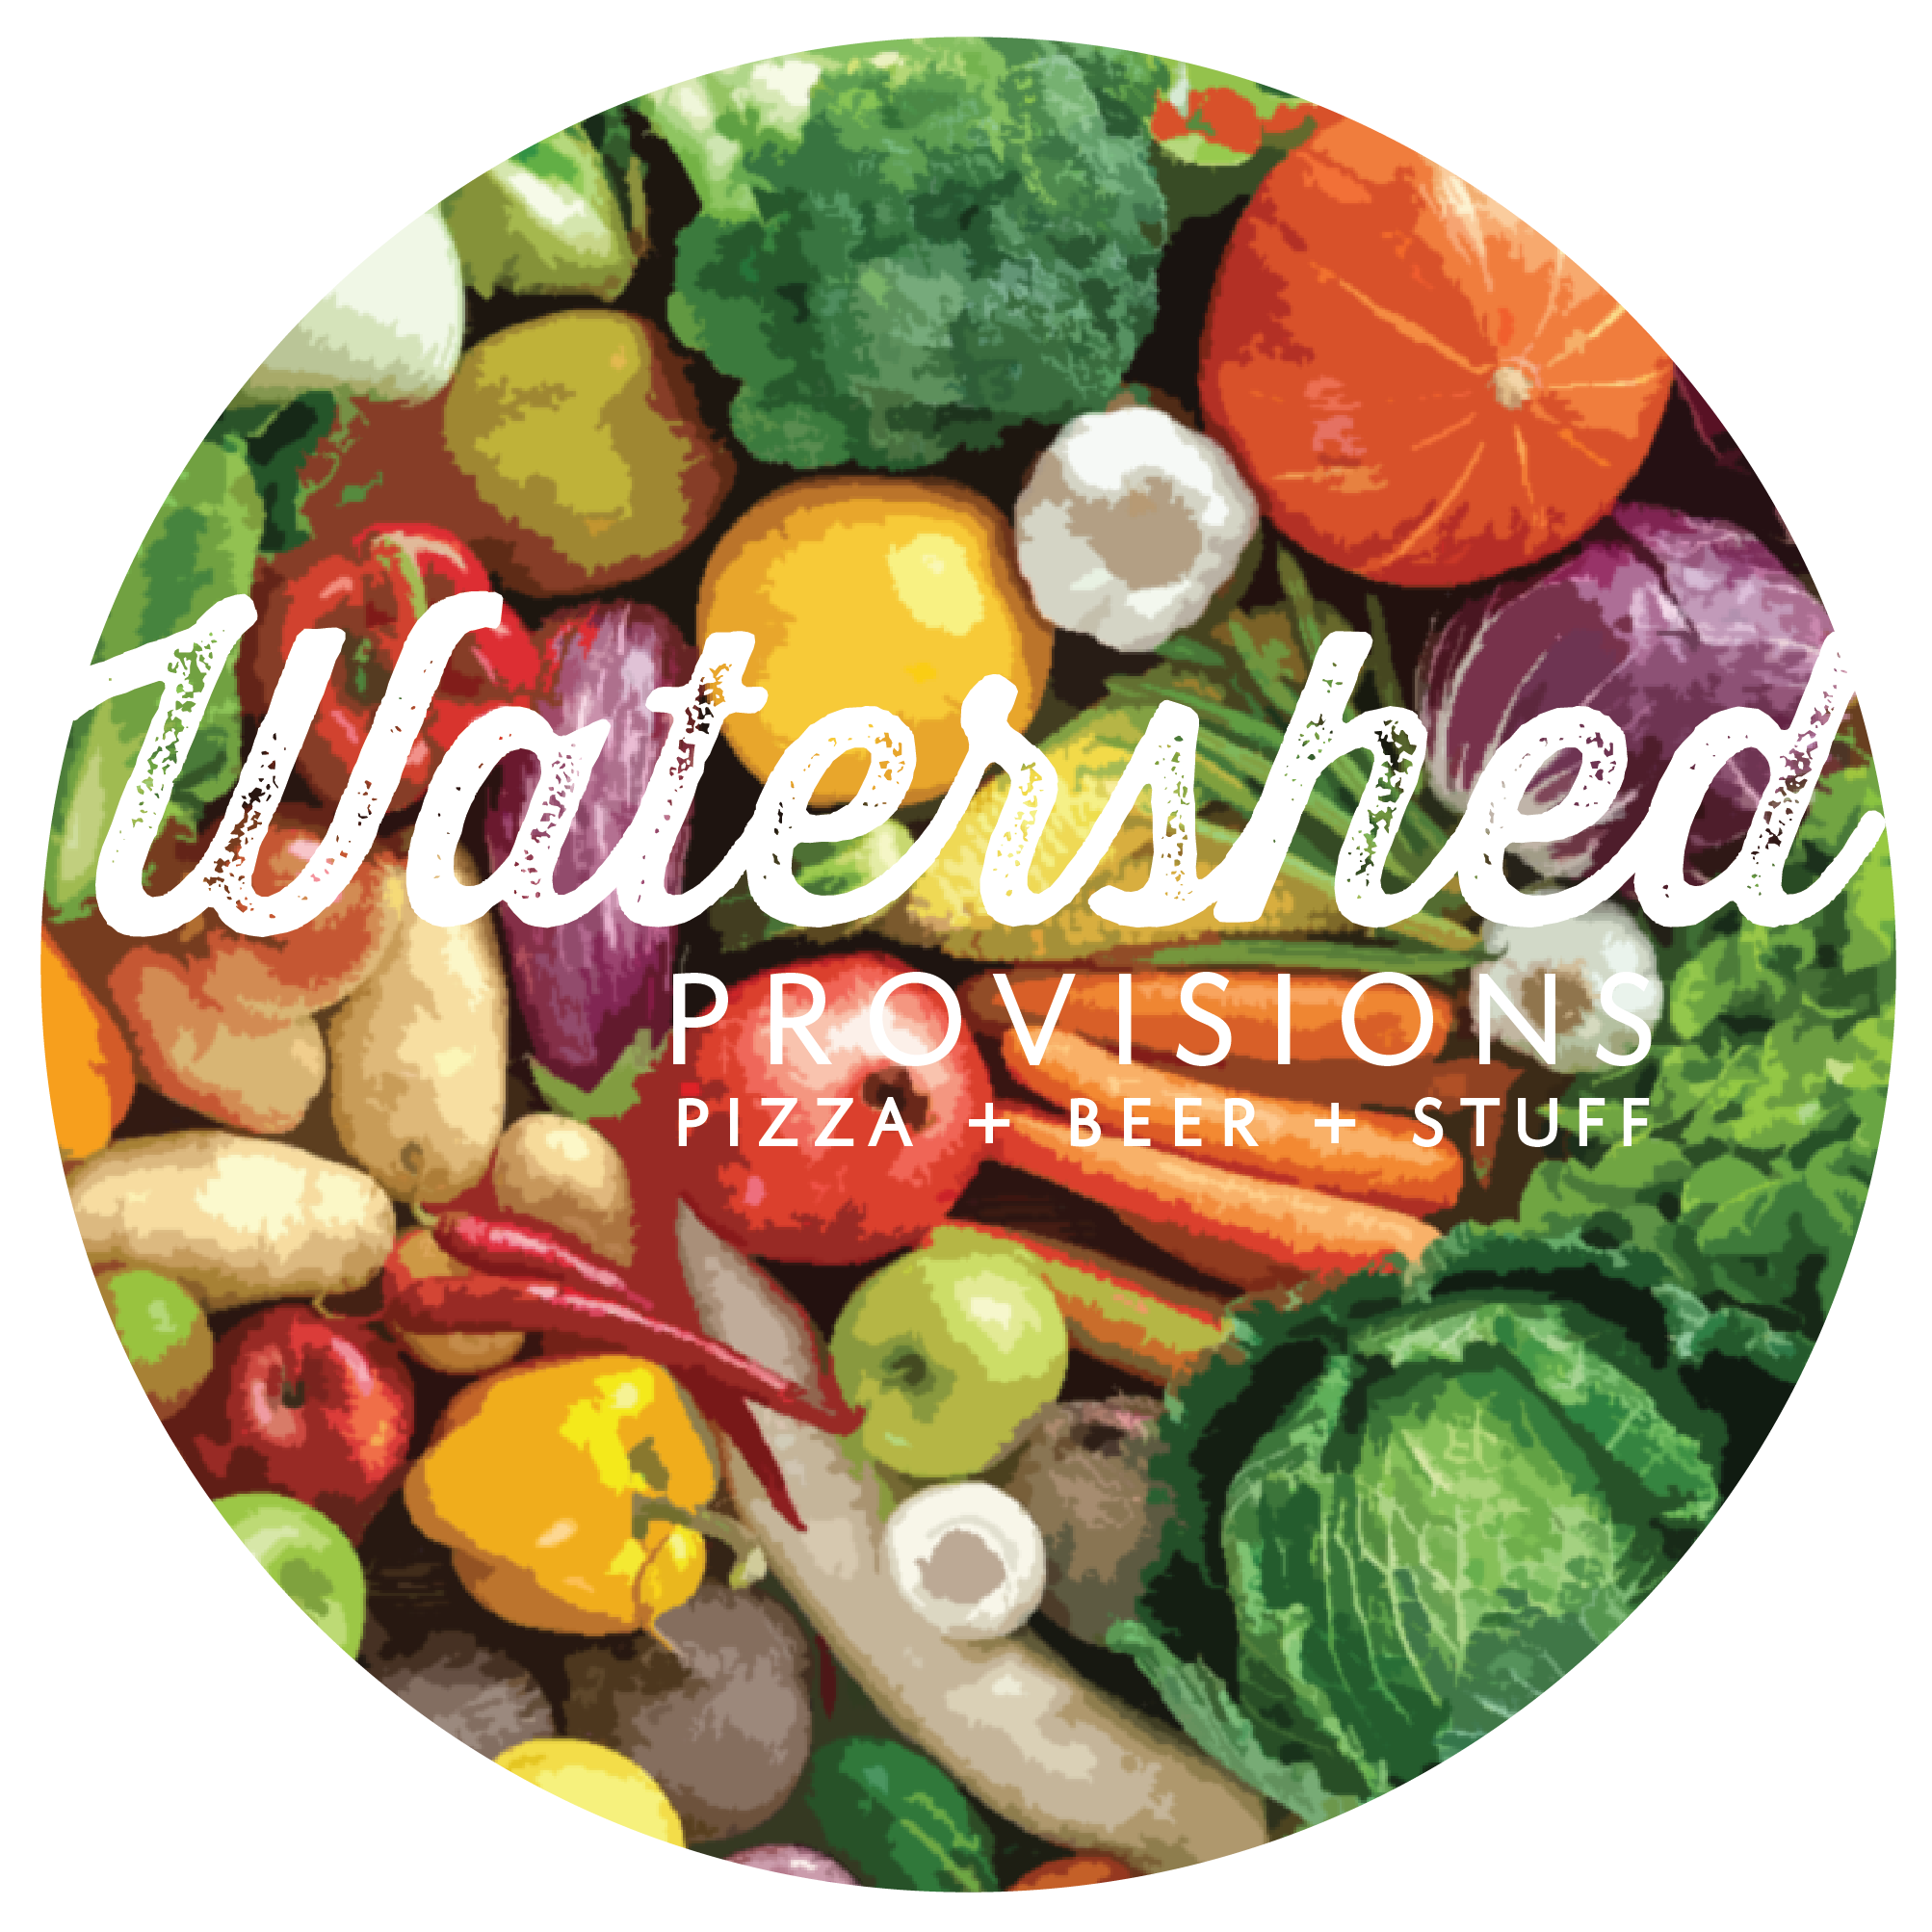 Business logo of Watershed Pub & Kitchen